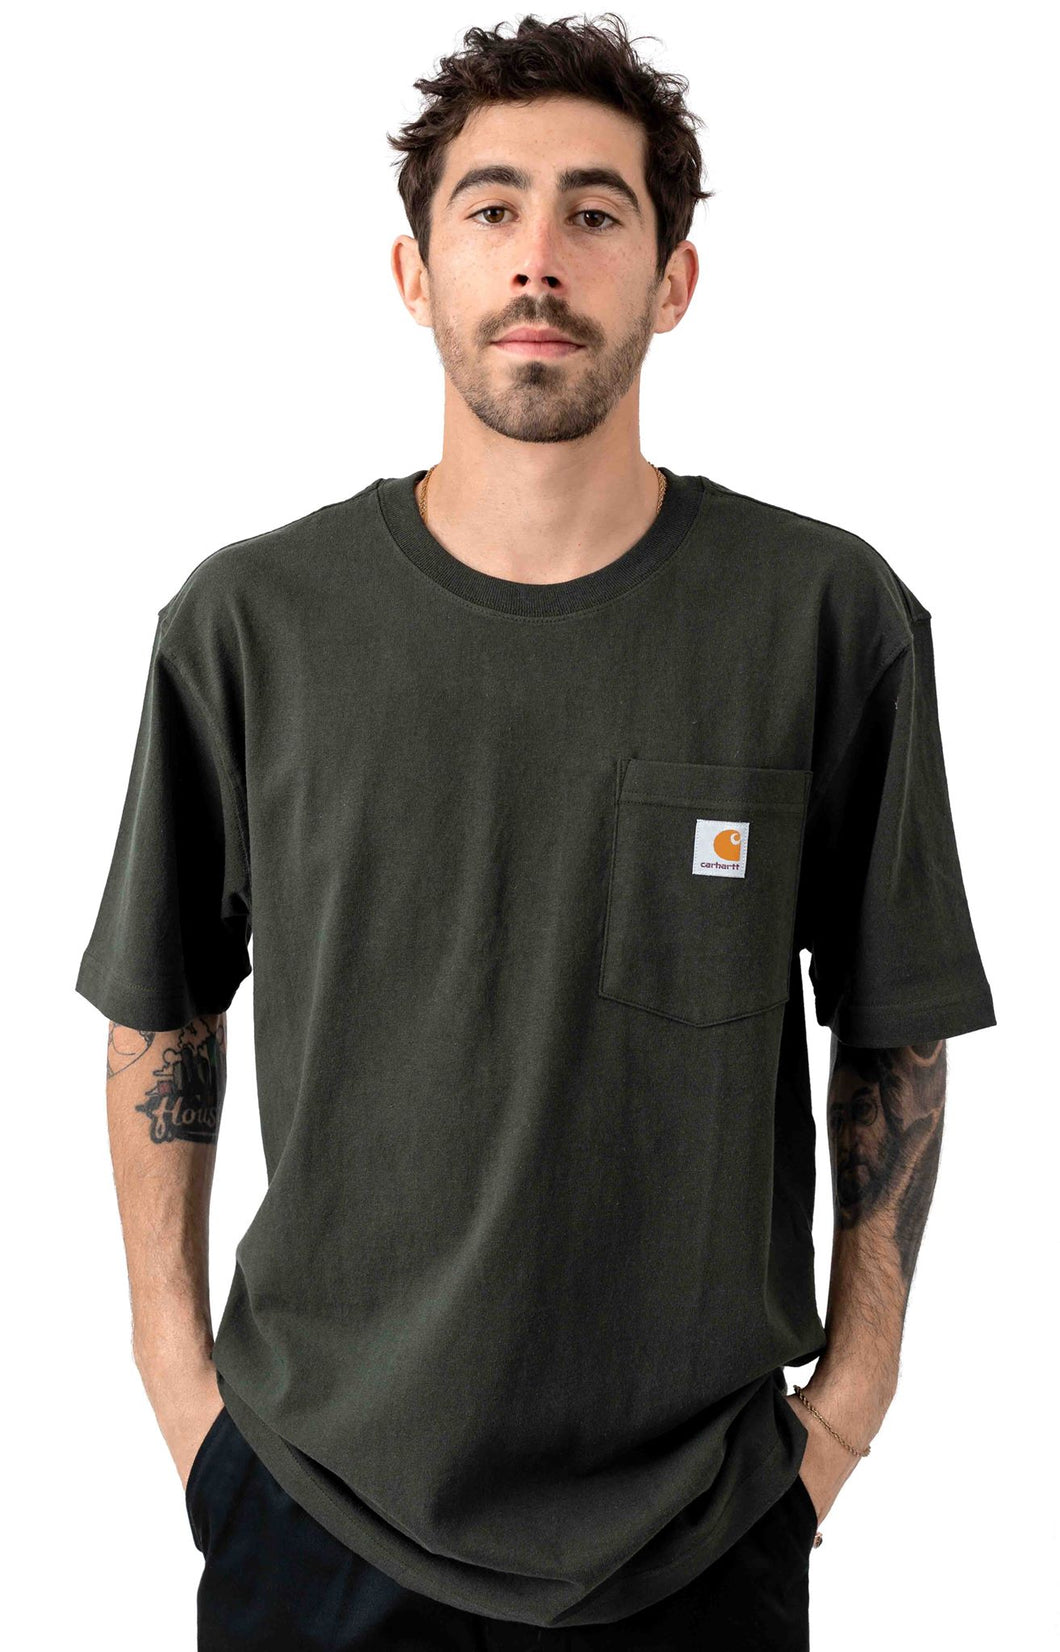 Carhartt K87 Workwear Pocket T-Shirt (Peat - 306)(Oversized fit)